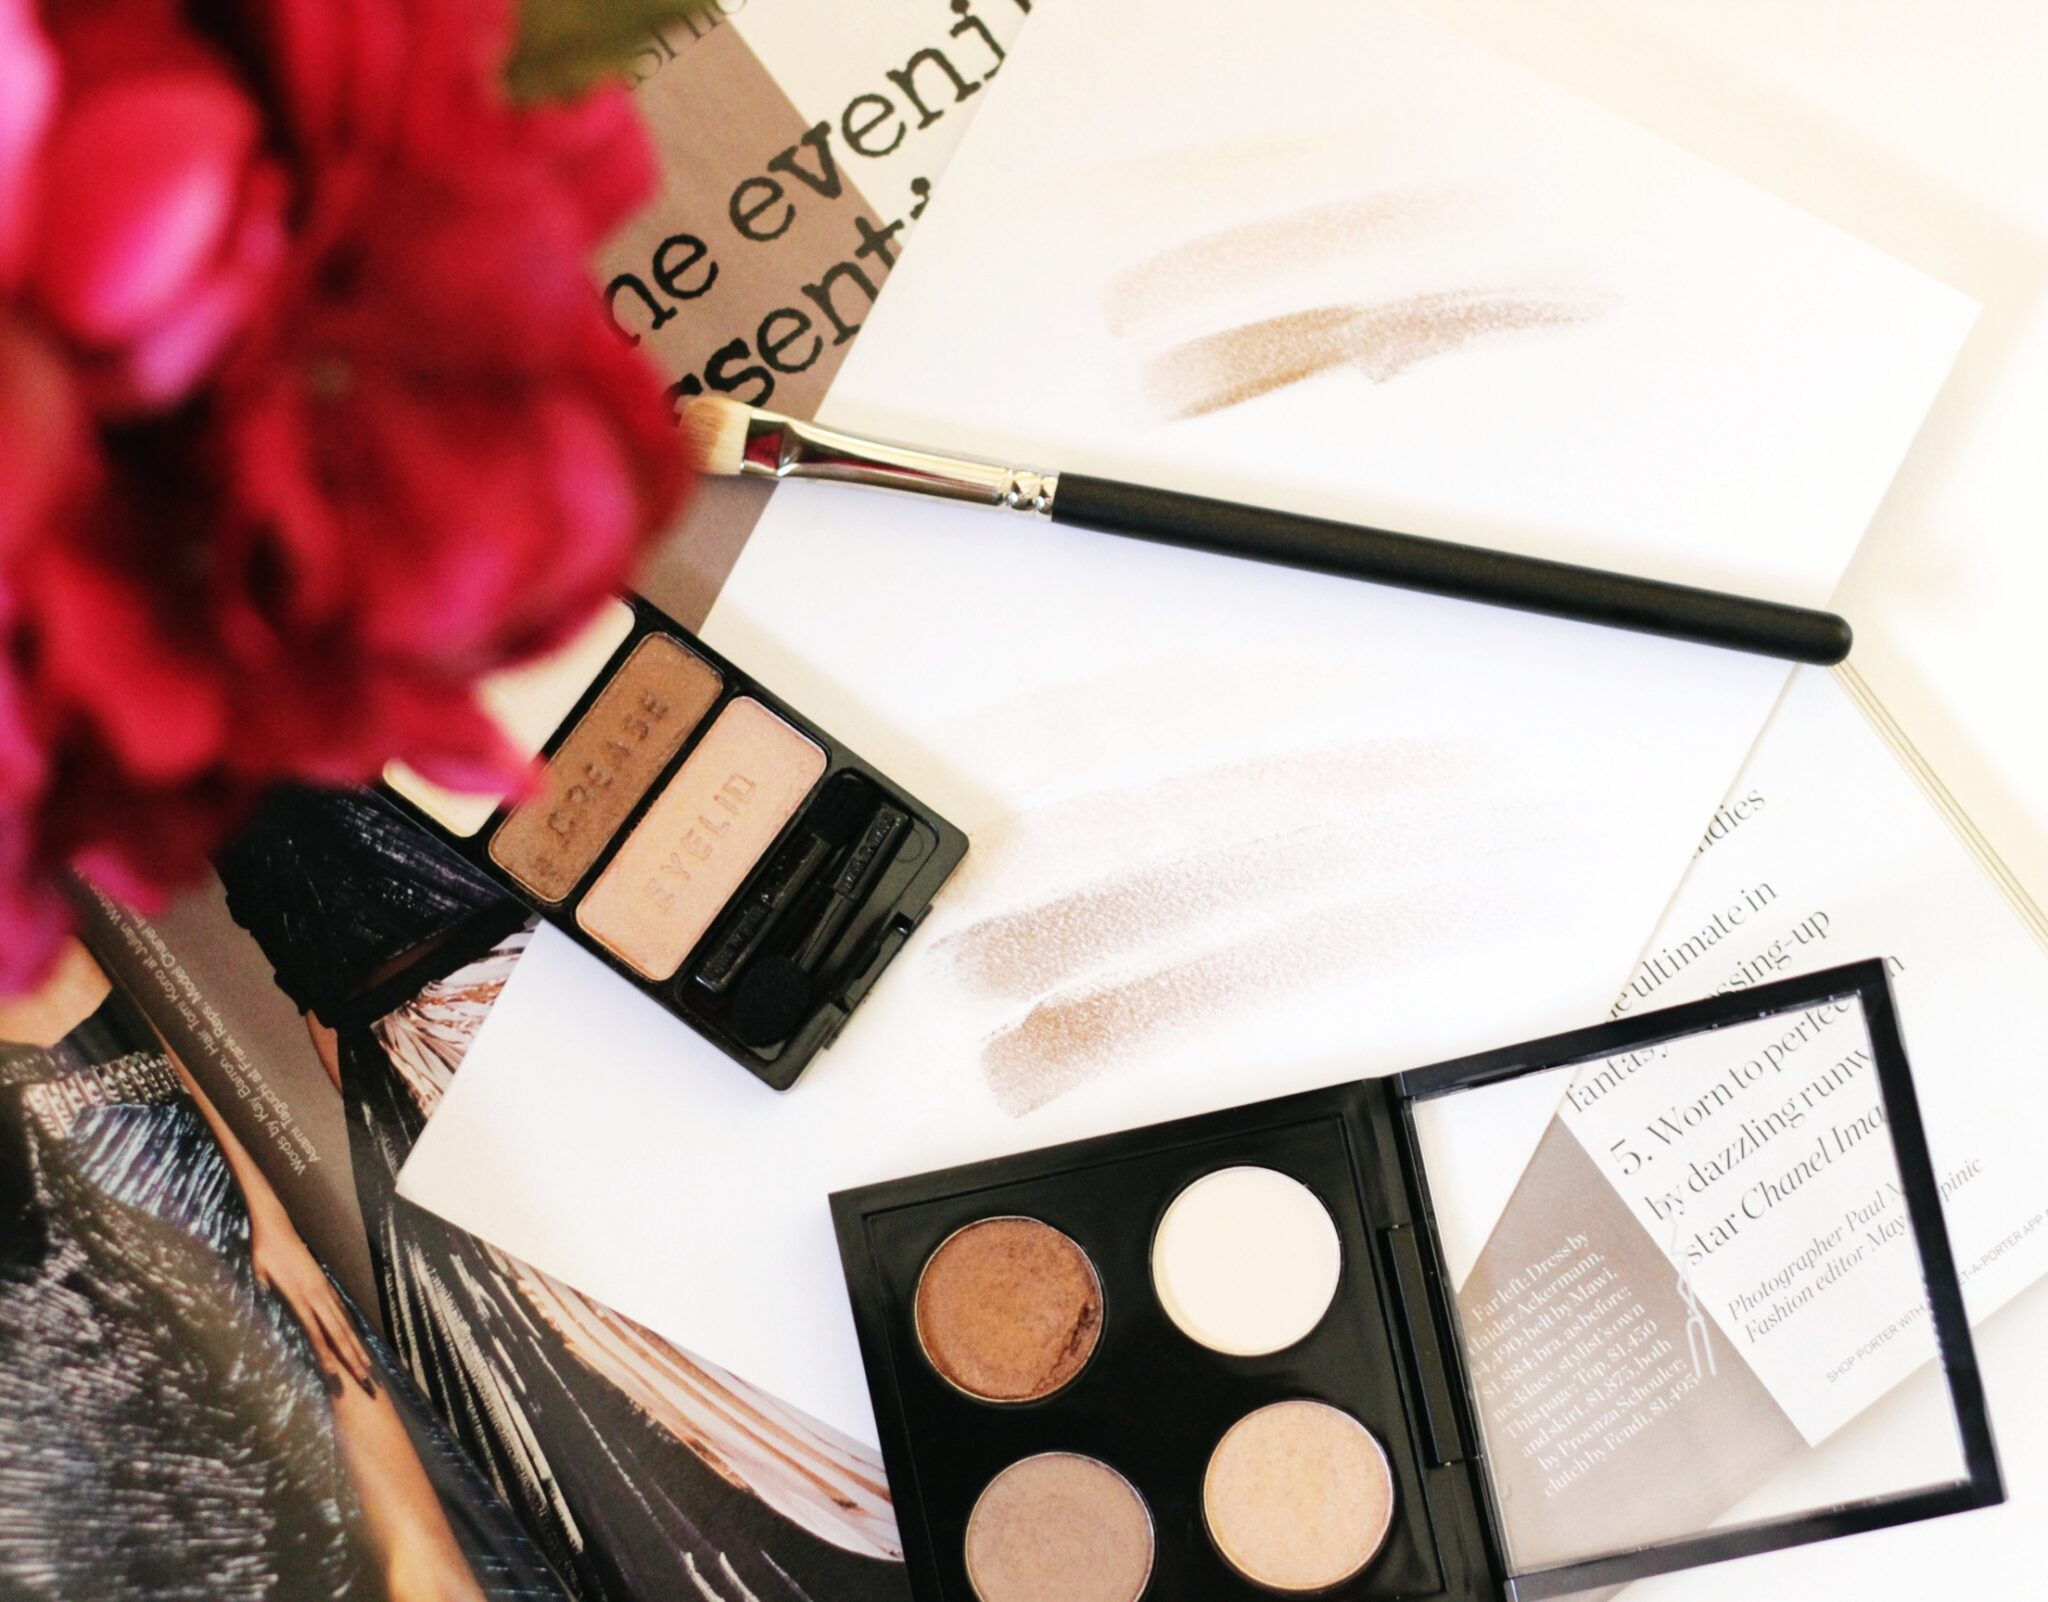 Looking for the perfect MAC eye shadow dupe? Los Angeles Blogger Jamie Lewis is sharing her favorite drugstore finds that is a MAC eye shadow dupe HERE!